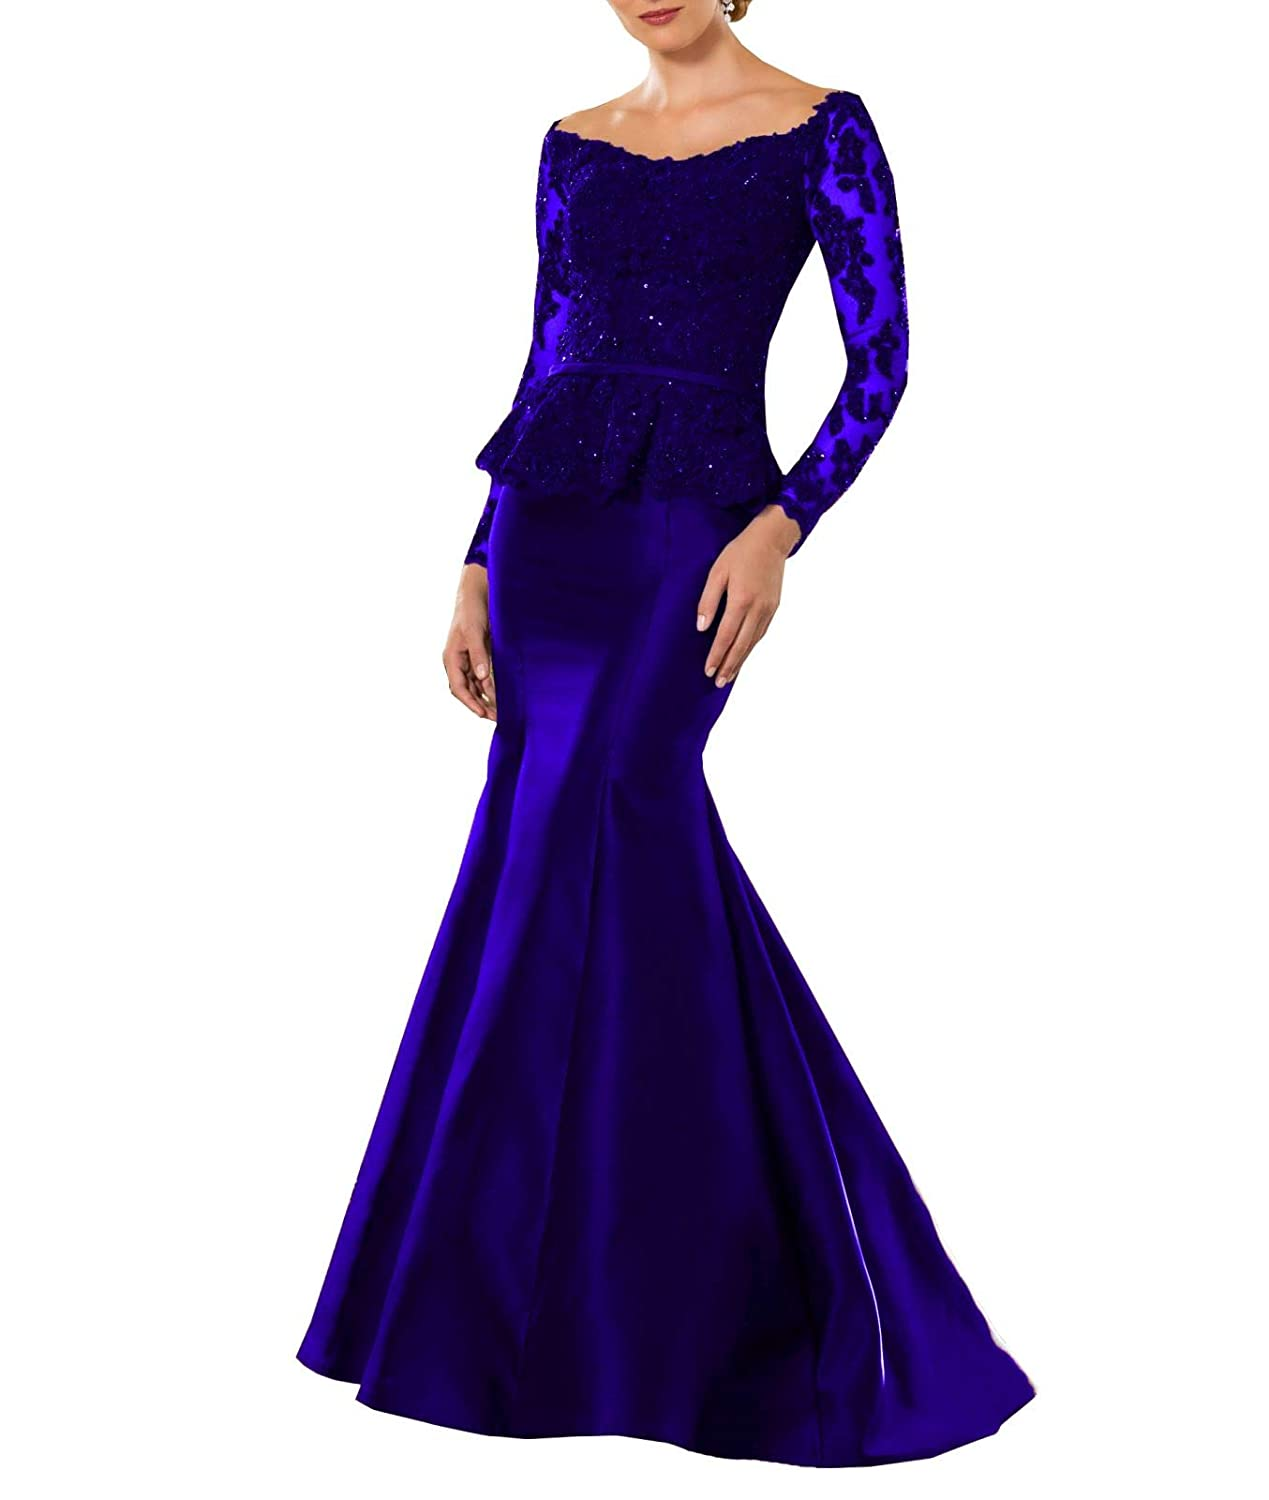 bluee Wanshaqin Women's Heavy Beaded Lace Formal Evening Gown Stunning Silk Party Dress with Empire Waist